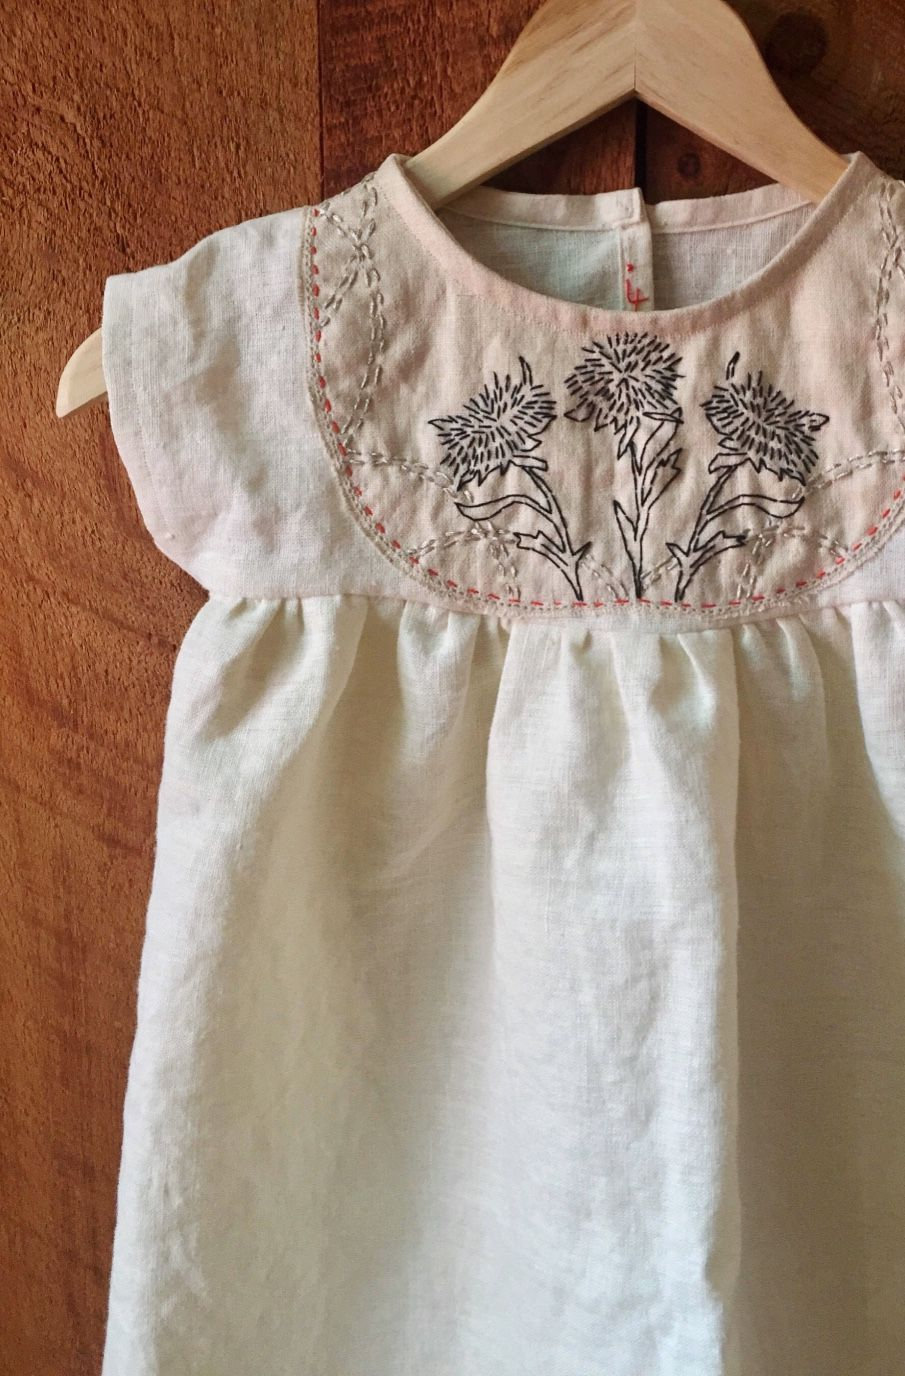 008fdf10898a5 Handmade Linen Dress With Hand Embroidery | ZoeLoomisHandmade on ...